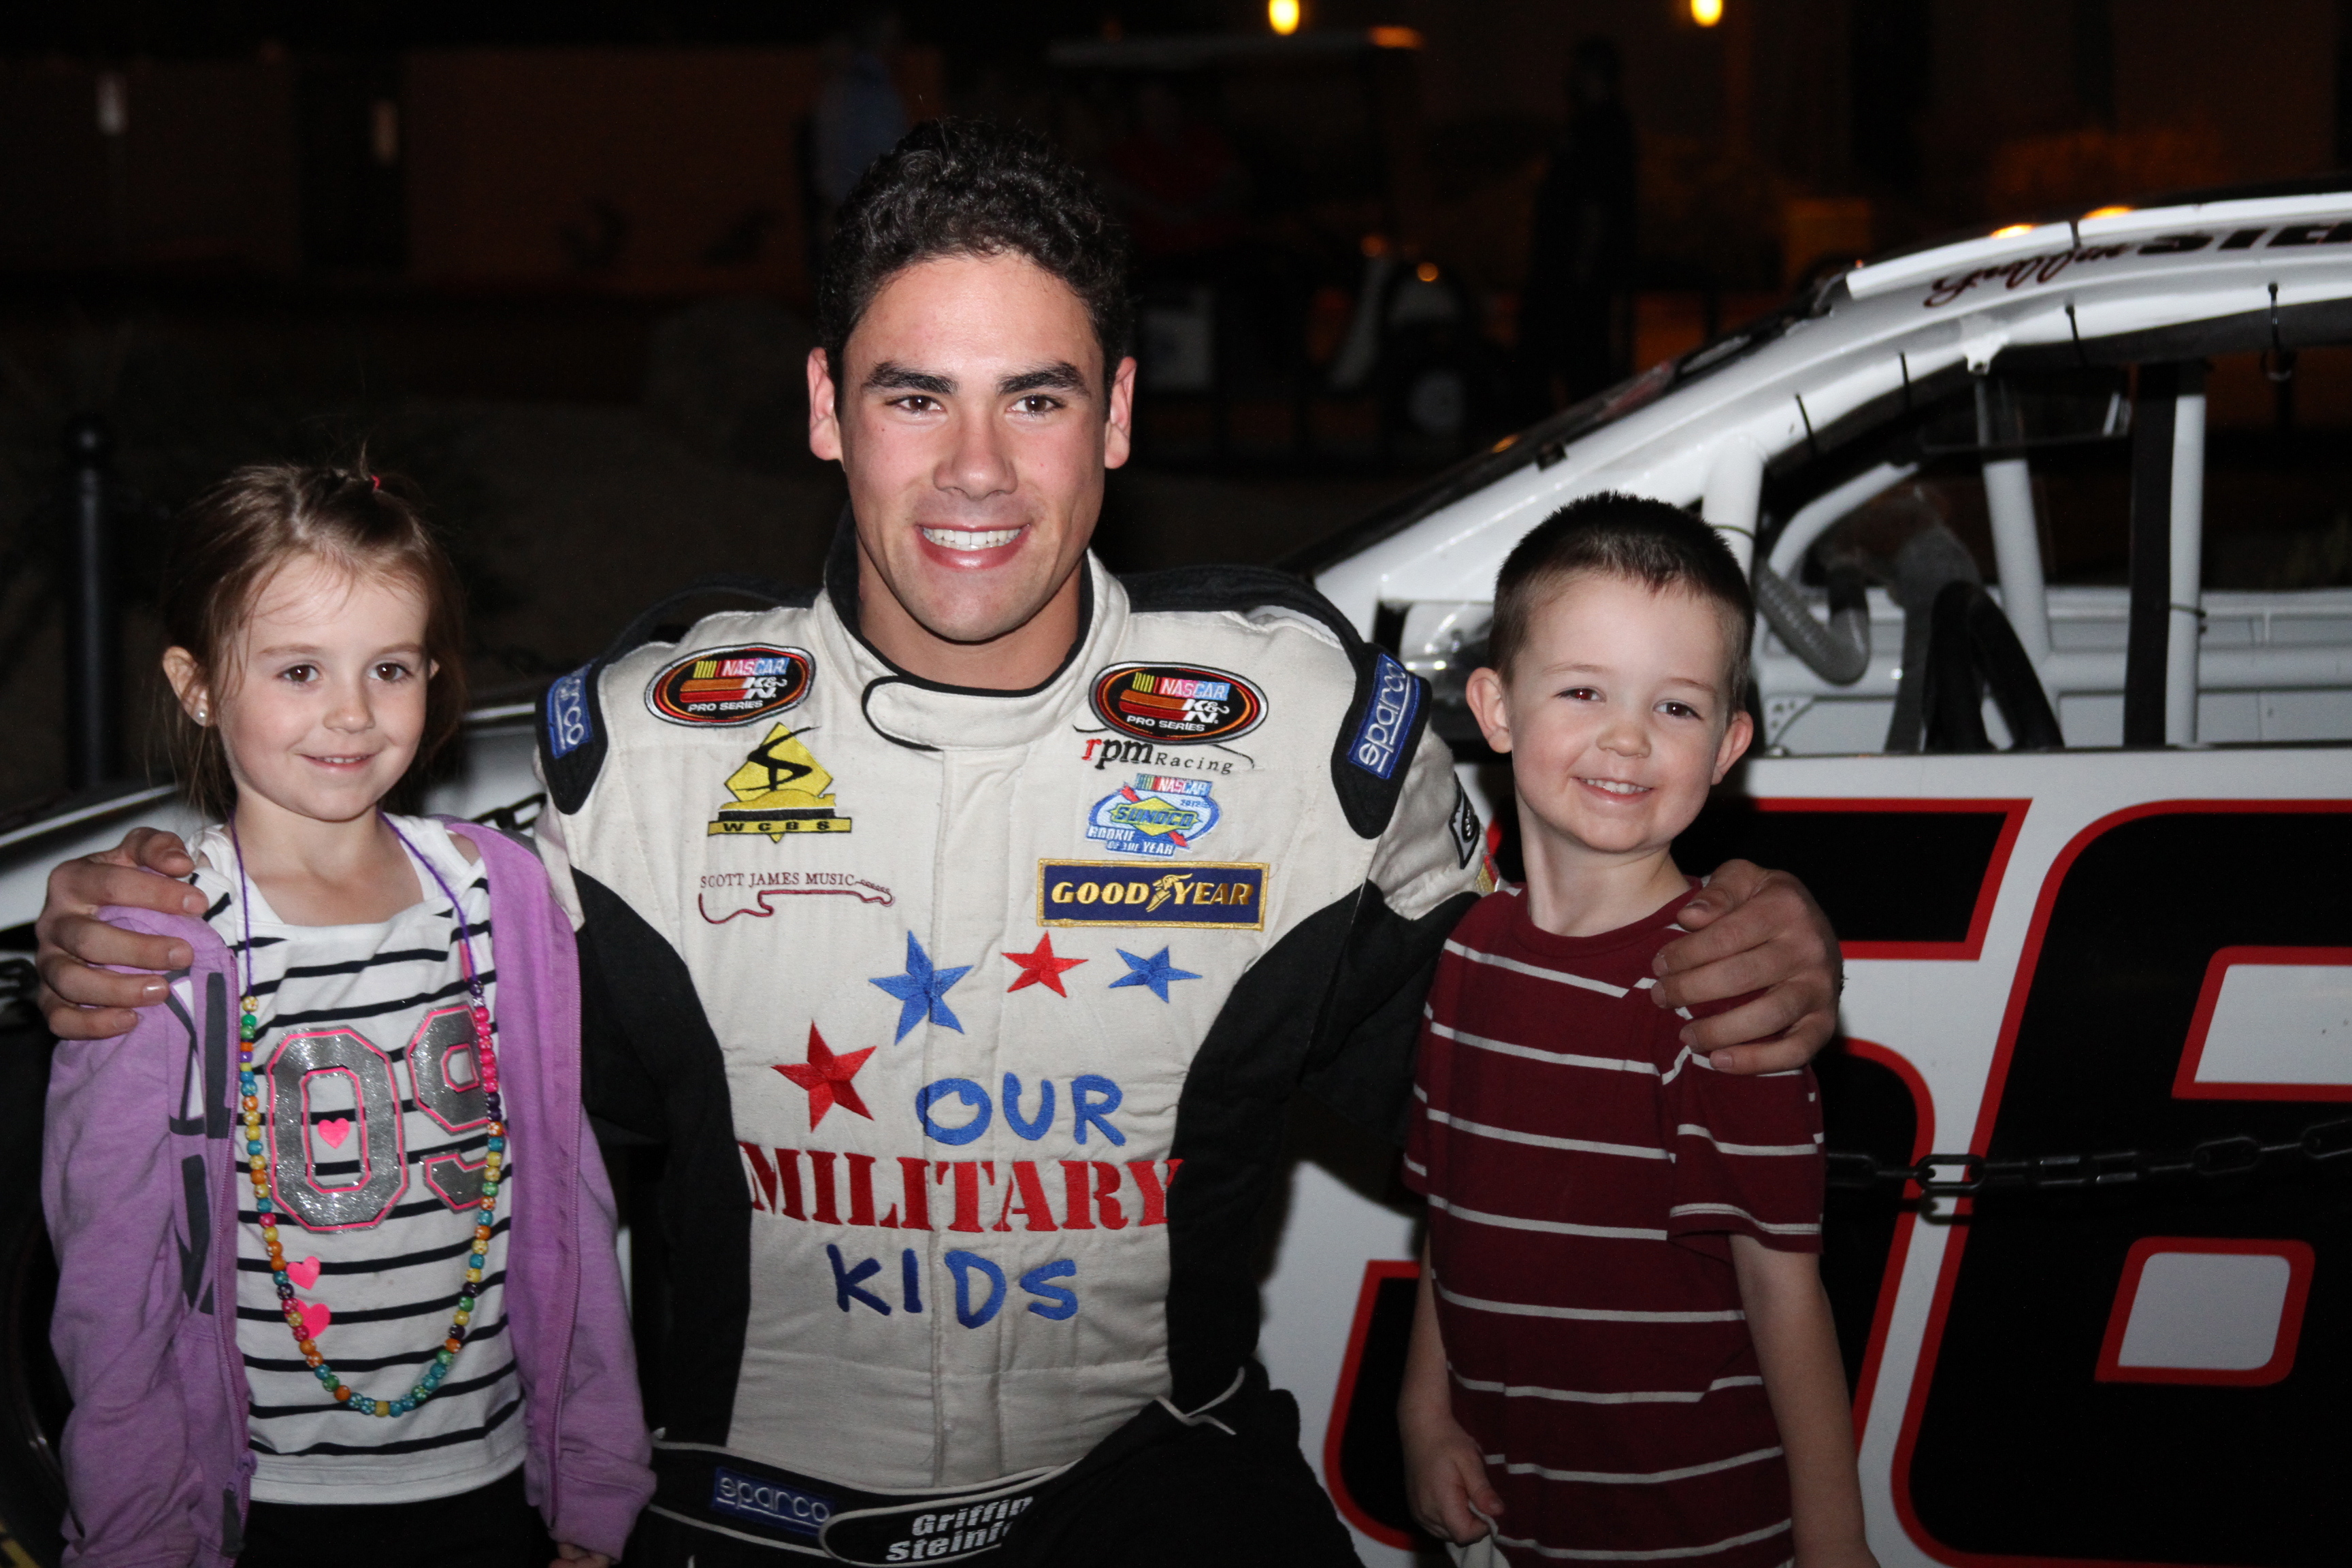 Our Military Kids and NASCAR